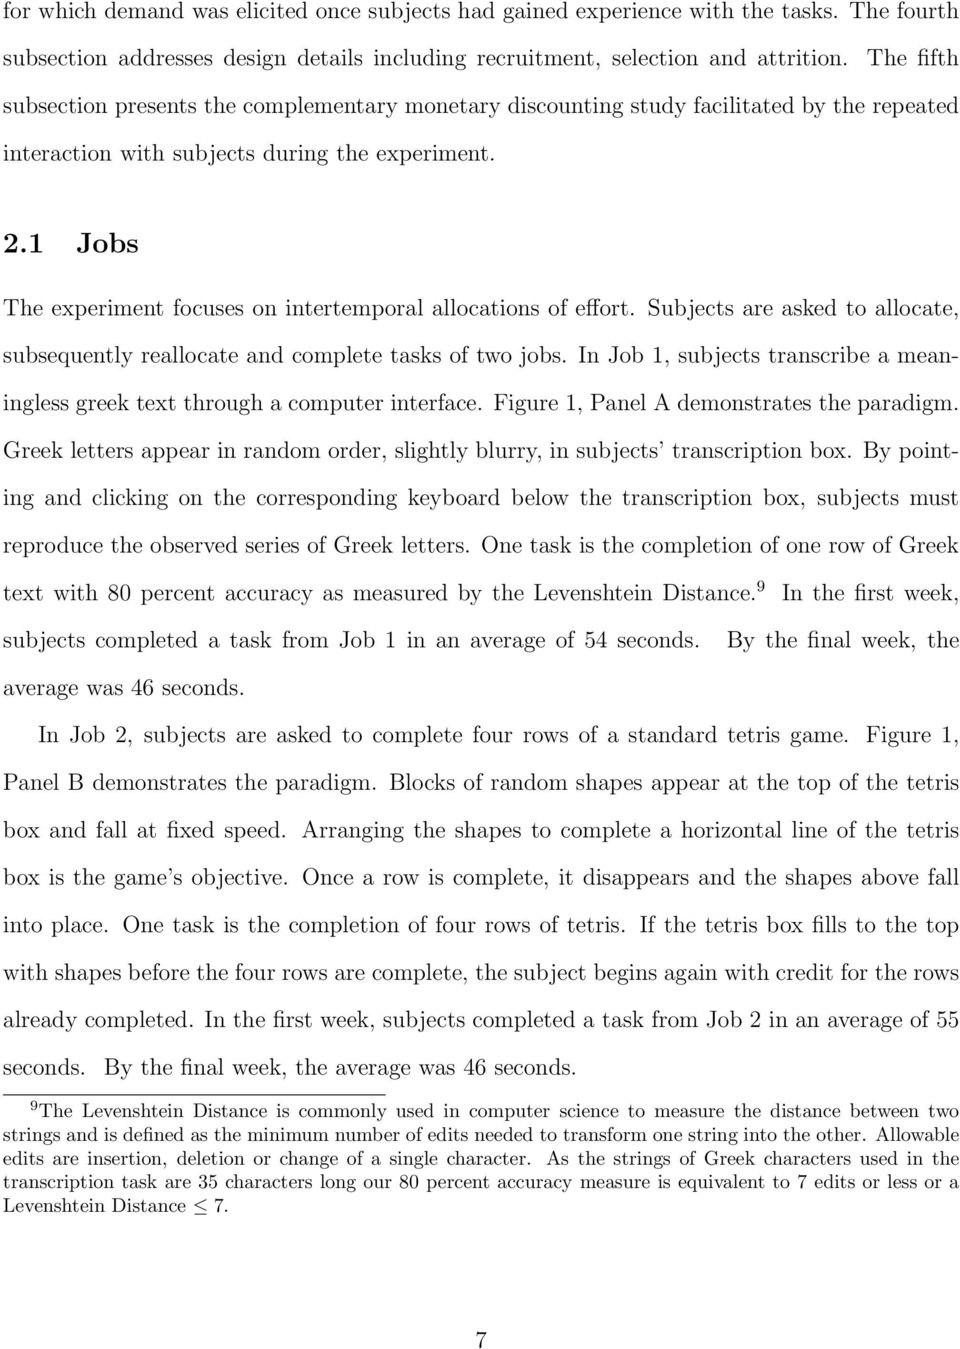 1 Jobs The experiment focuses on intertemporal allocations of e ort. Subjects are asked to allocate, subsequently reallocate and complete tasks of two jobs.